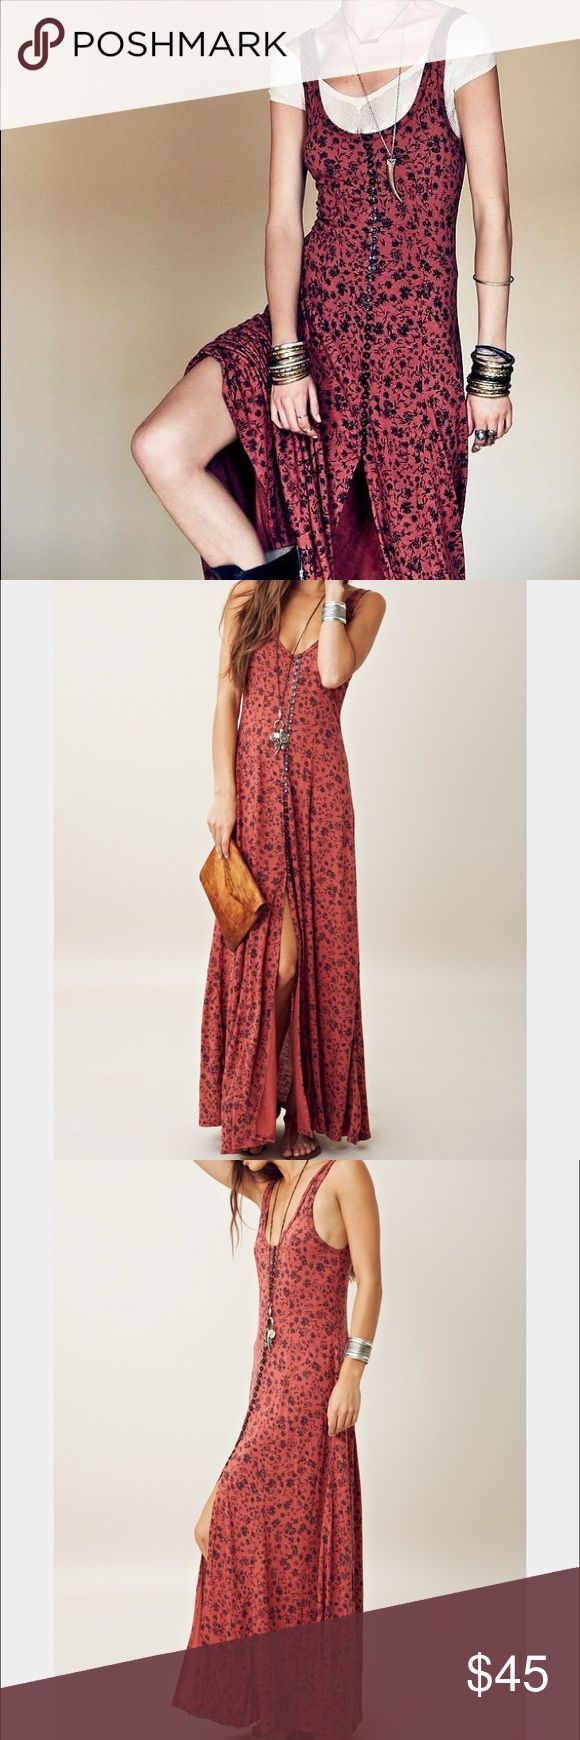 NWT FP FREE PEOPLE GOLD COAST MAXI DRESS XS Floral print creates a subtle neo-grunge look on this Free People dress. The button-down bodice opens to a high front slit. Scoop neckline. Unlined. 85% rayon/15% linen Length: 54in   Free People (FP) NWT Authentic  - No outlet or damaged items!   If you are buying multiple items please make sure you bundle *BEFORE* or shipping is per listing. Price is  as listed.  No trades please.  I am not a retailer and I do not have other sizes.  Just a former…